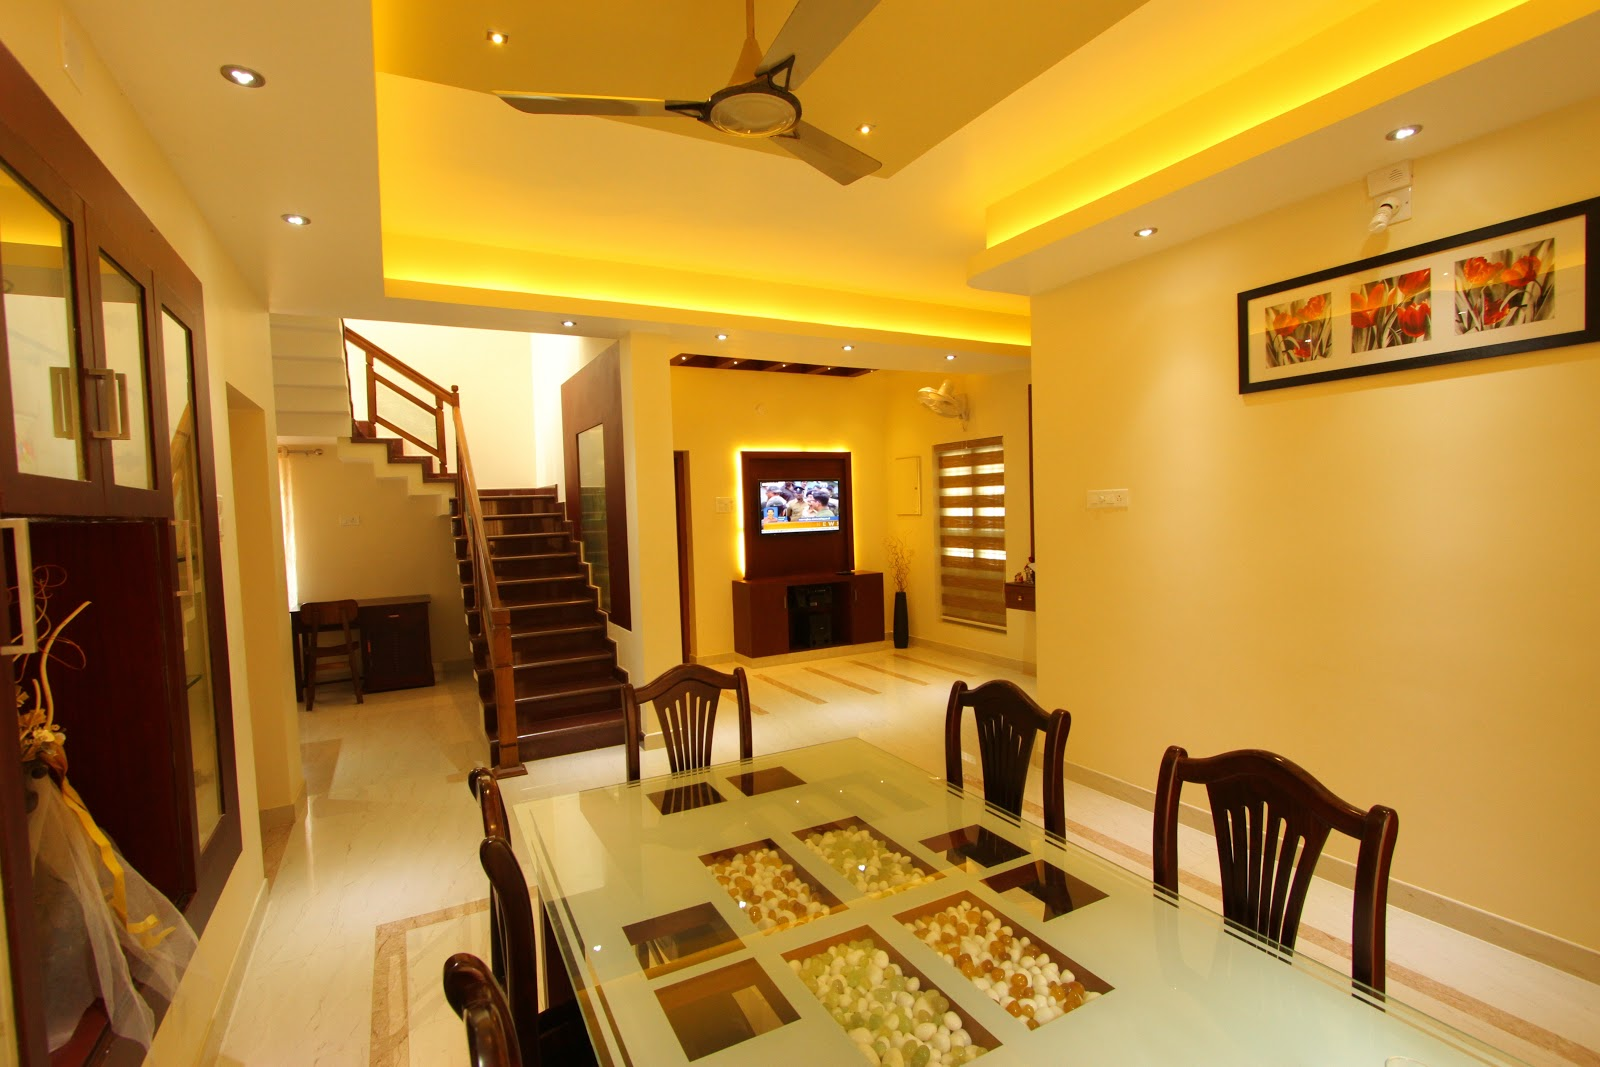 Shilpakala interiors award winning home interior design for Home interior architecture